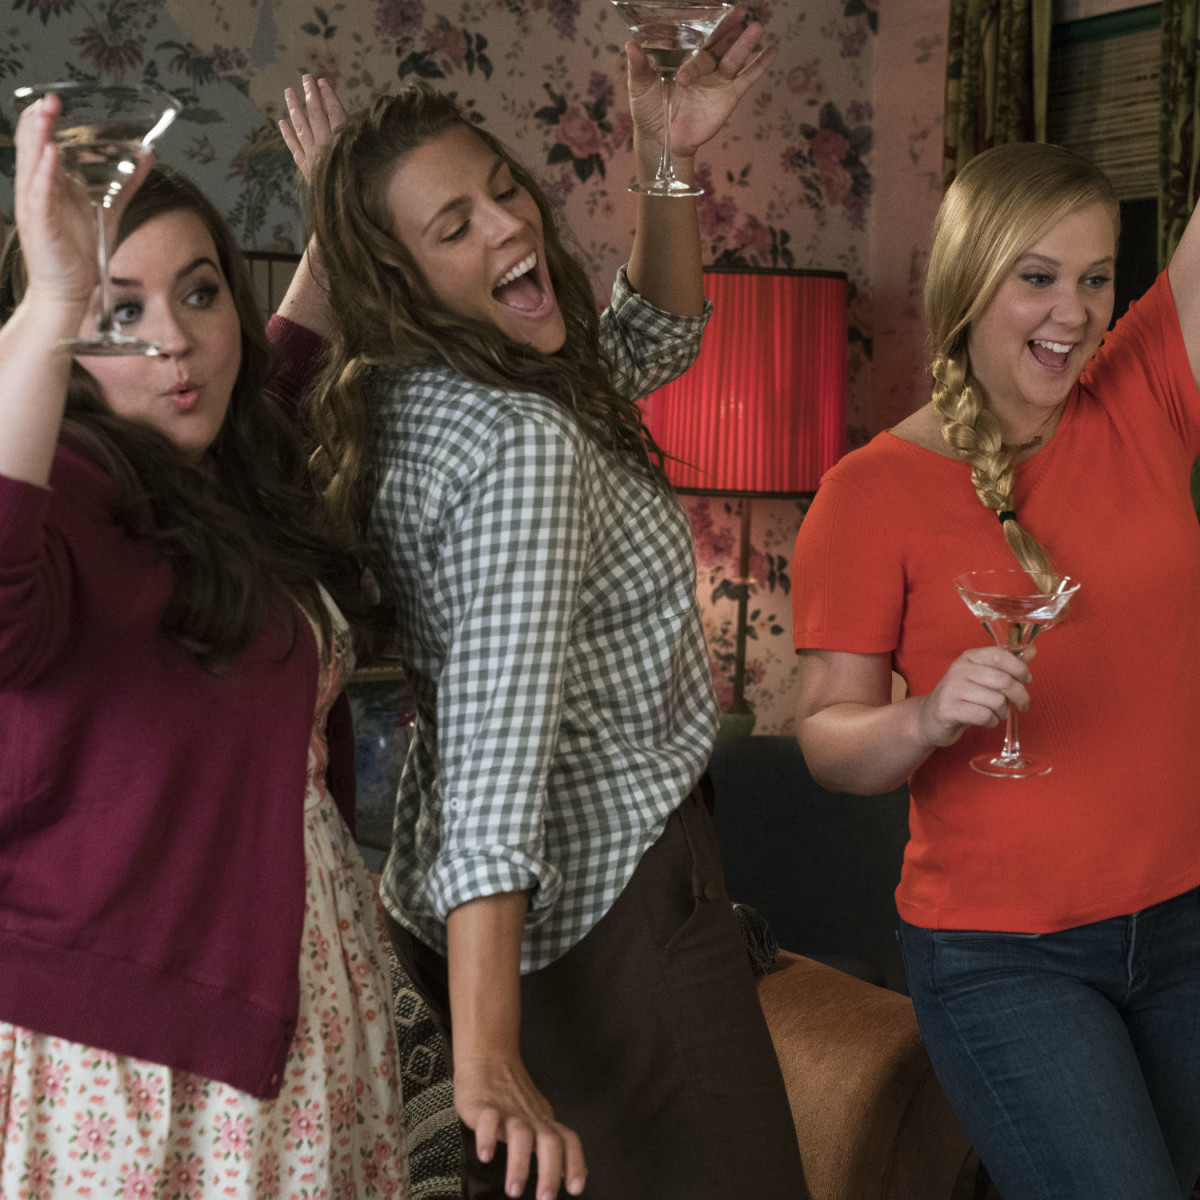 Aidy Bryant, Busy Philipps, and Amy Schumer in I Feel Pretty